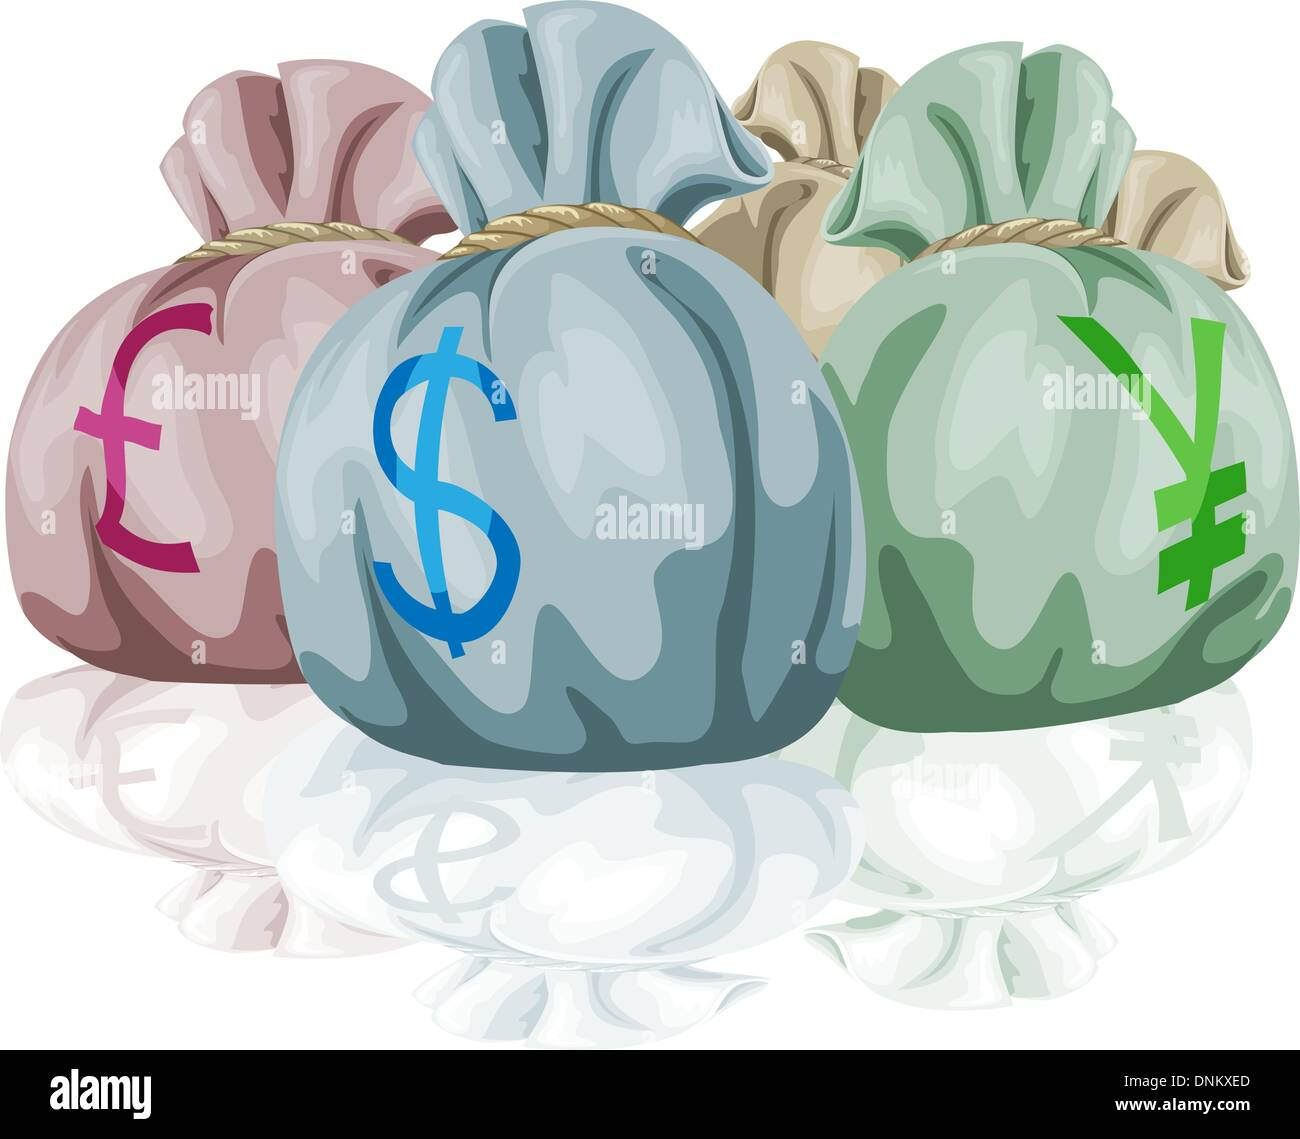 Money bag sacks containing different world currencies. Pound, dollar and yen symbols showing. - Stock Vector